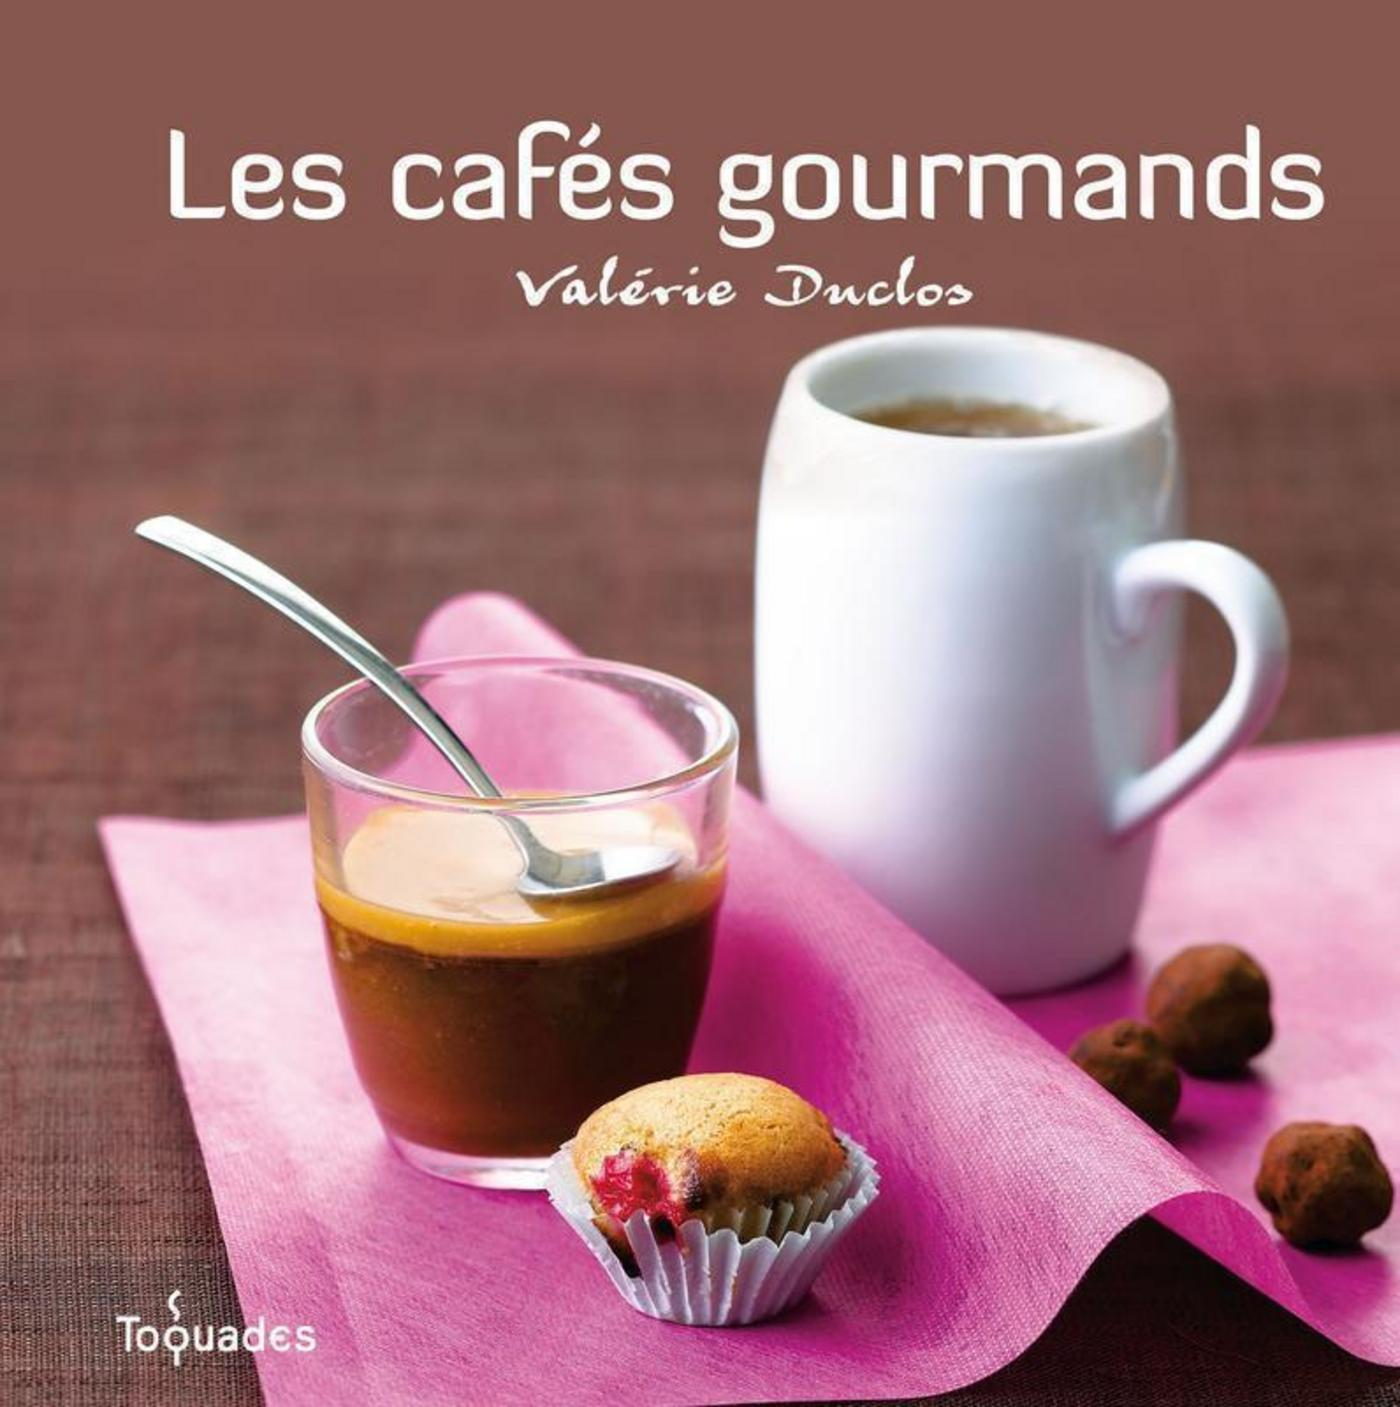 Les cafés gourmands (ebook)